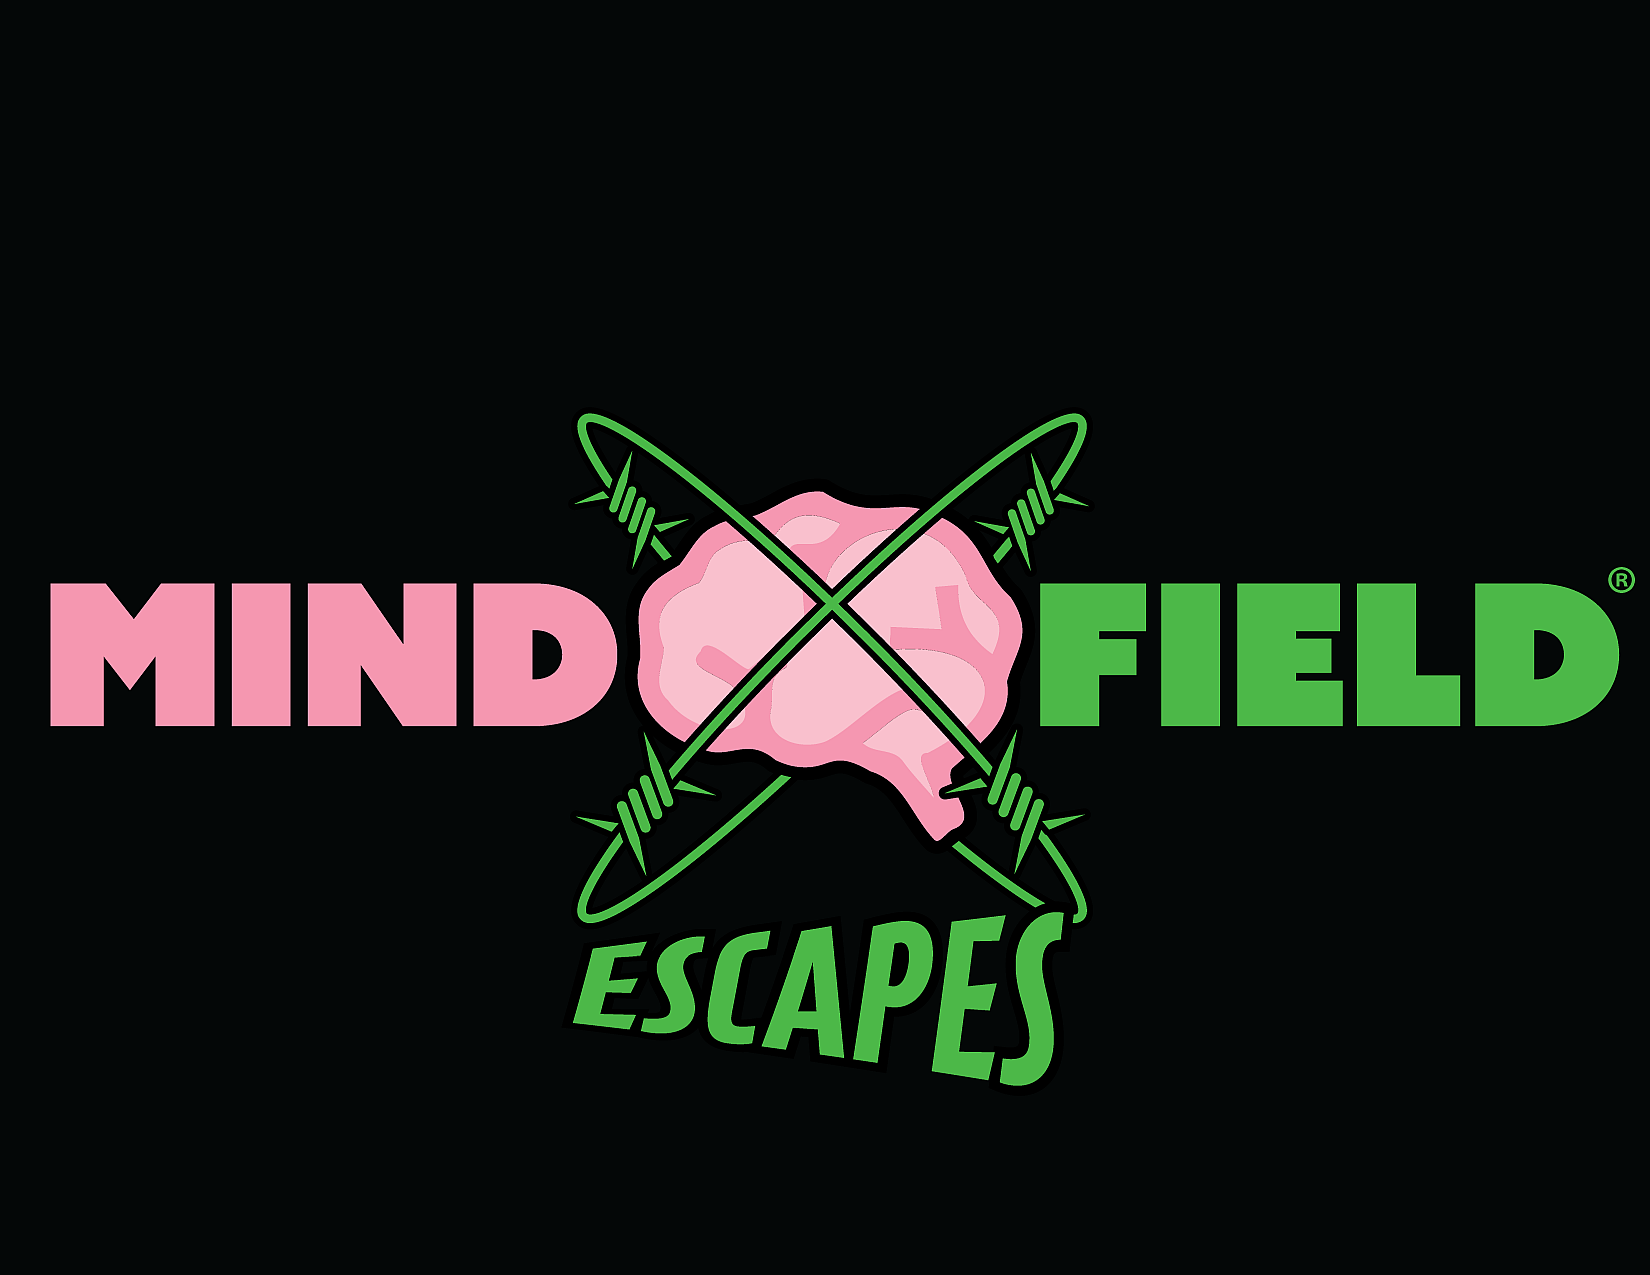 Mindfield Escapes - Mindfield Escapes